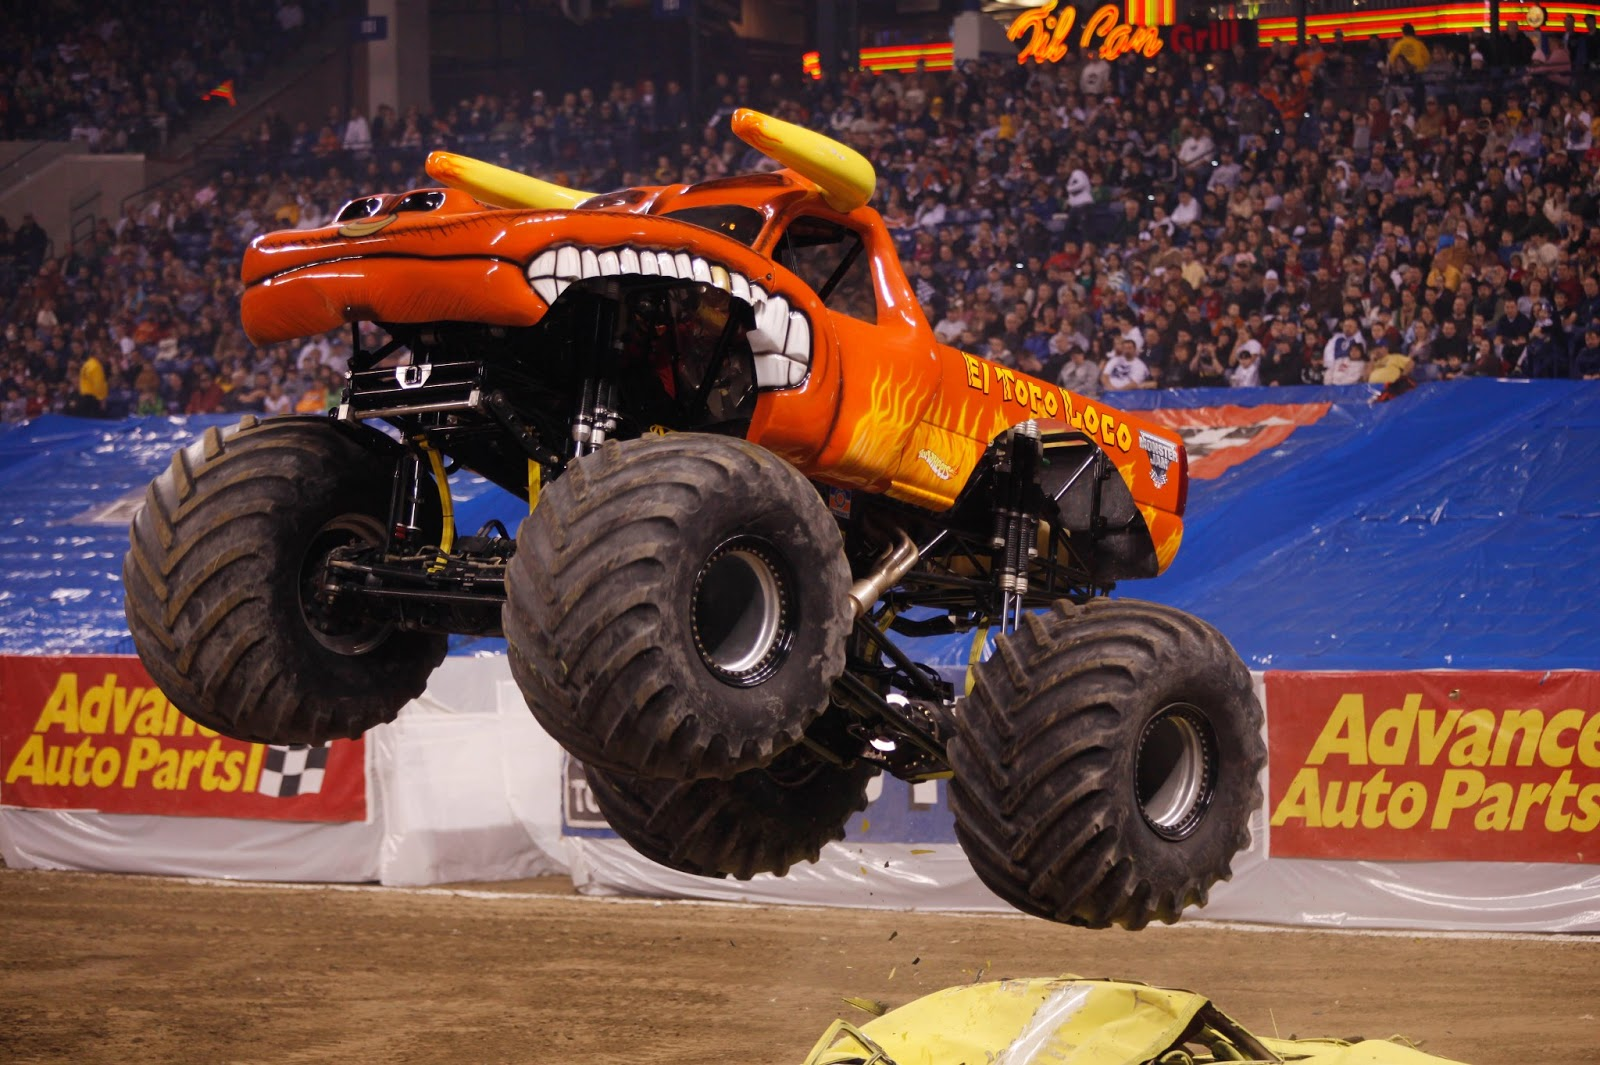 Get to know the drivers of the monster trucks by getting a Monster Jam Pit Party ticket or attending one of the autograph sessions. Even if you've never been to a Monster Jam show before, take the chance on a unique experience! The Monster Jam will be one of the most raucous, exciting, one-of-a-kind events you've ever been to!